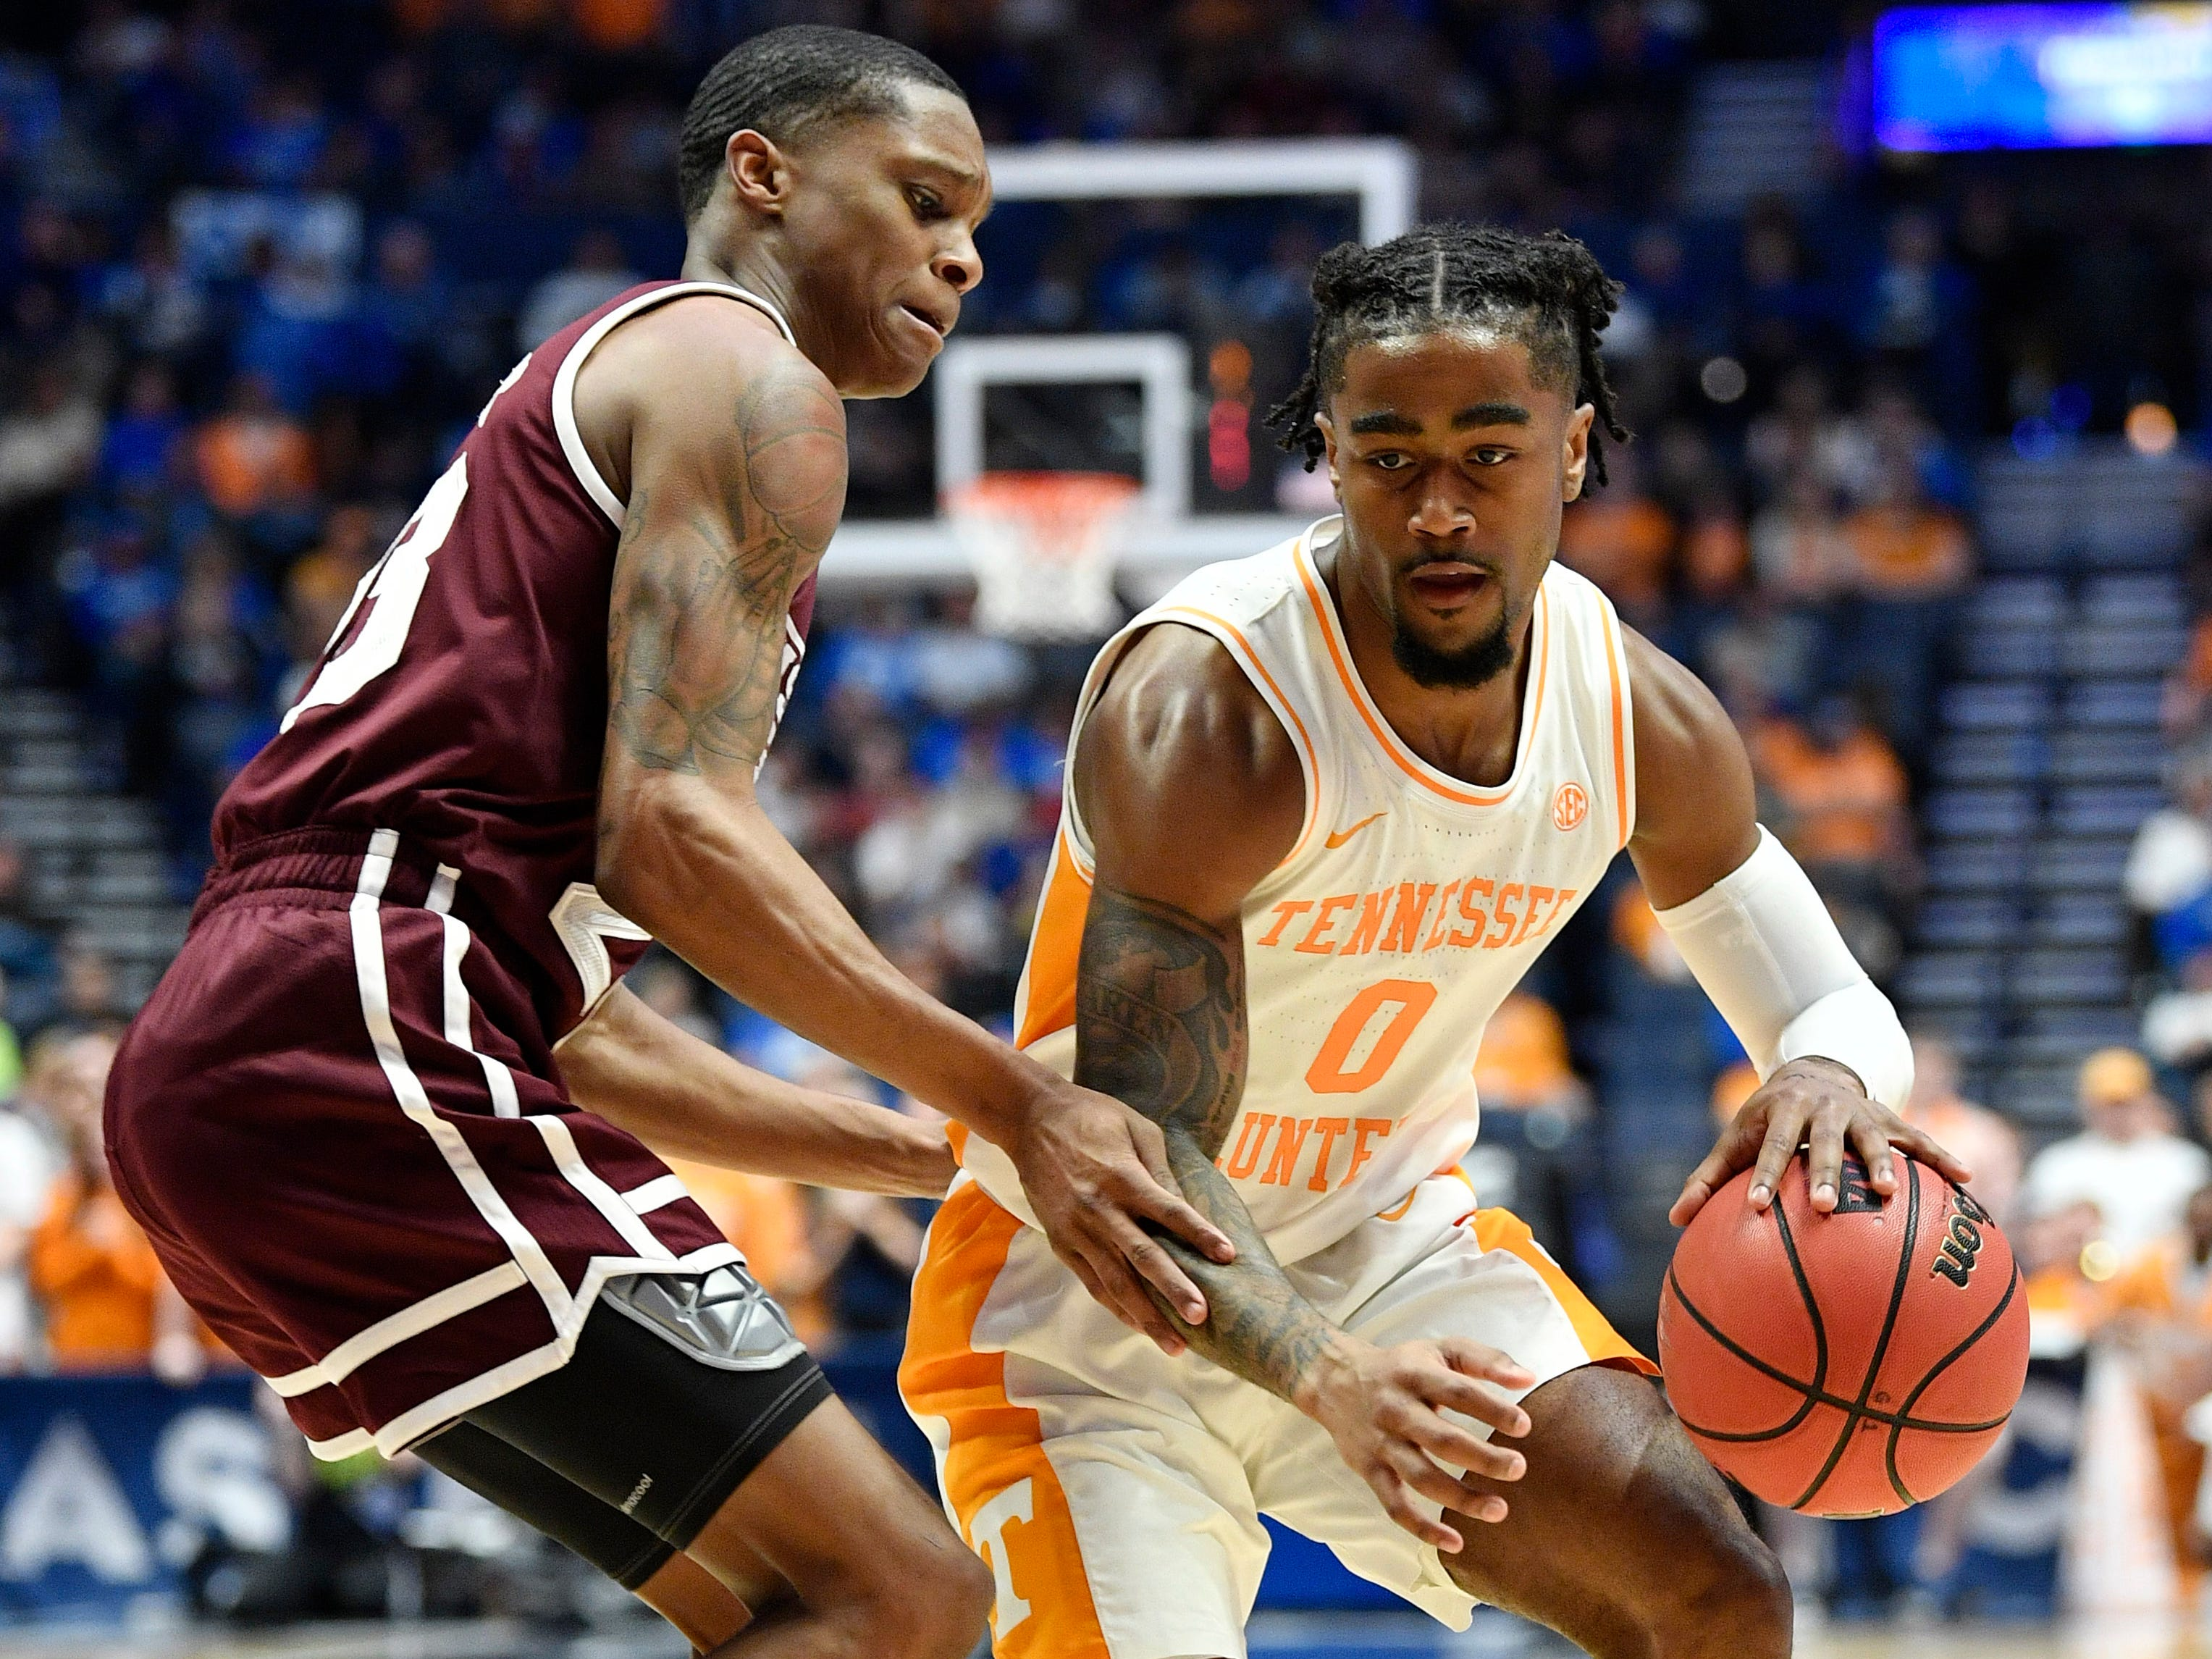 Tennessee guard Jordan Bone (0) moves the ball defended by Mississippi State guard Tyson Carter (23) during the first half of the SEC Men's Basketball Tournament game at Bridgestone Arena in Nashville, Tenn., Friday, March 15, 2019.